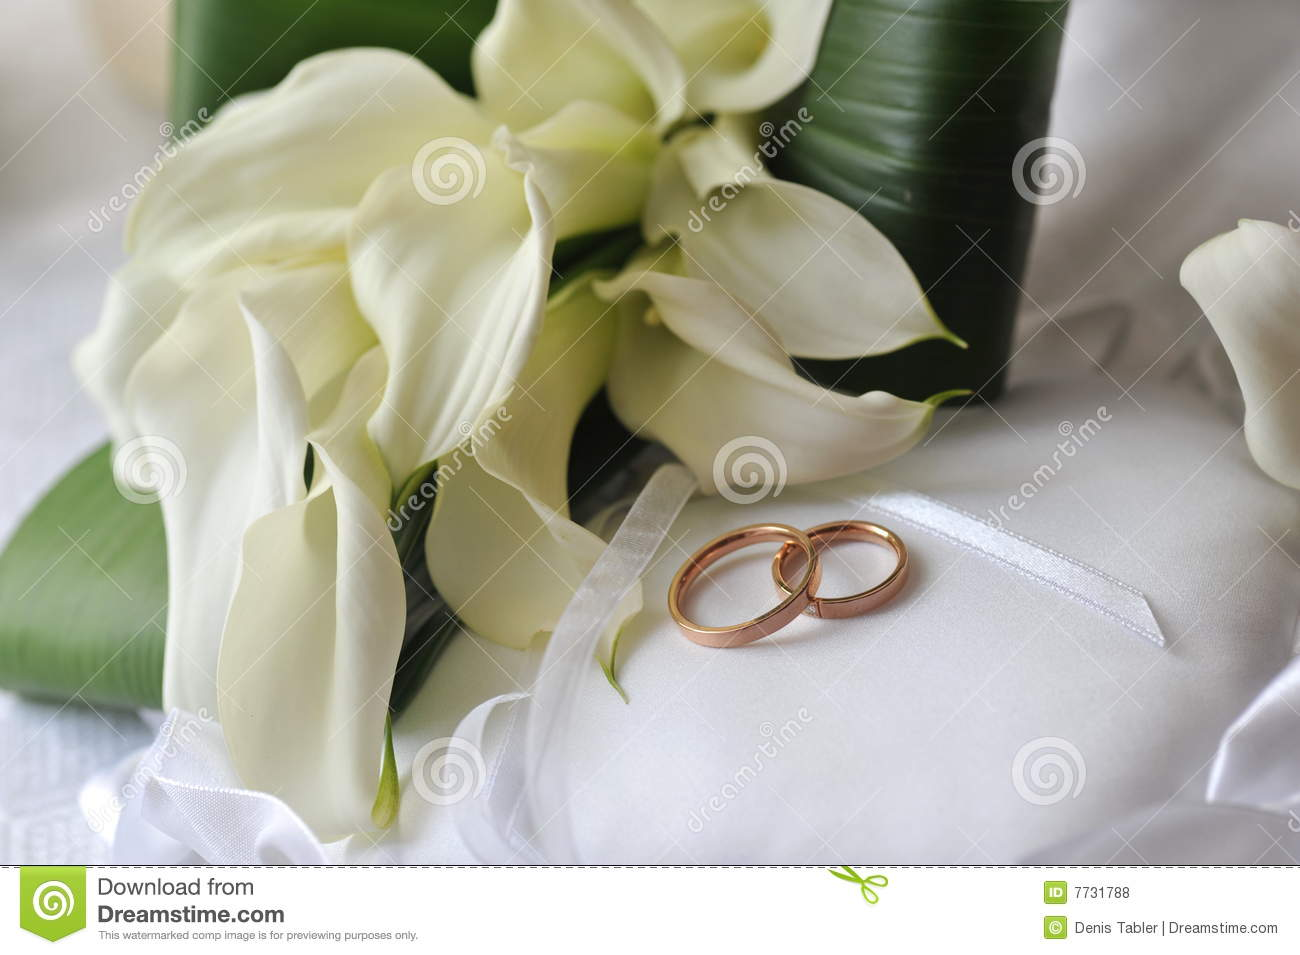 of roses rings bouquet diamond engagement vimeo on